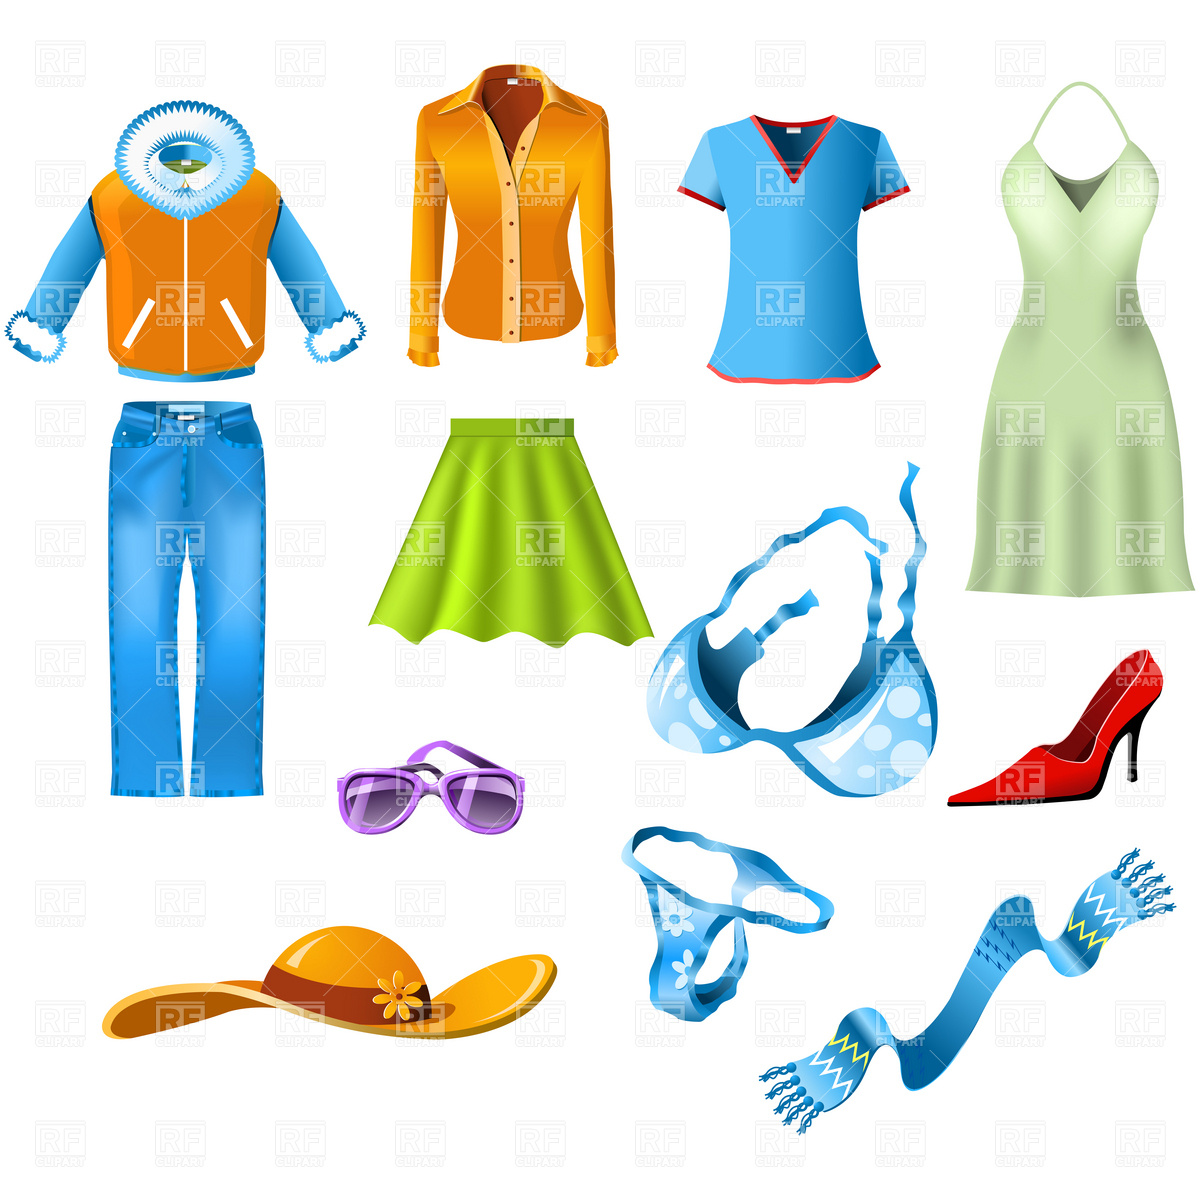 Clothes clipart free clipart royalty free Clothes Clip Art | Clipart Panda - Free Clipart Images clipart royalty free